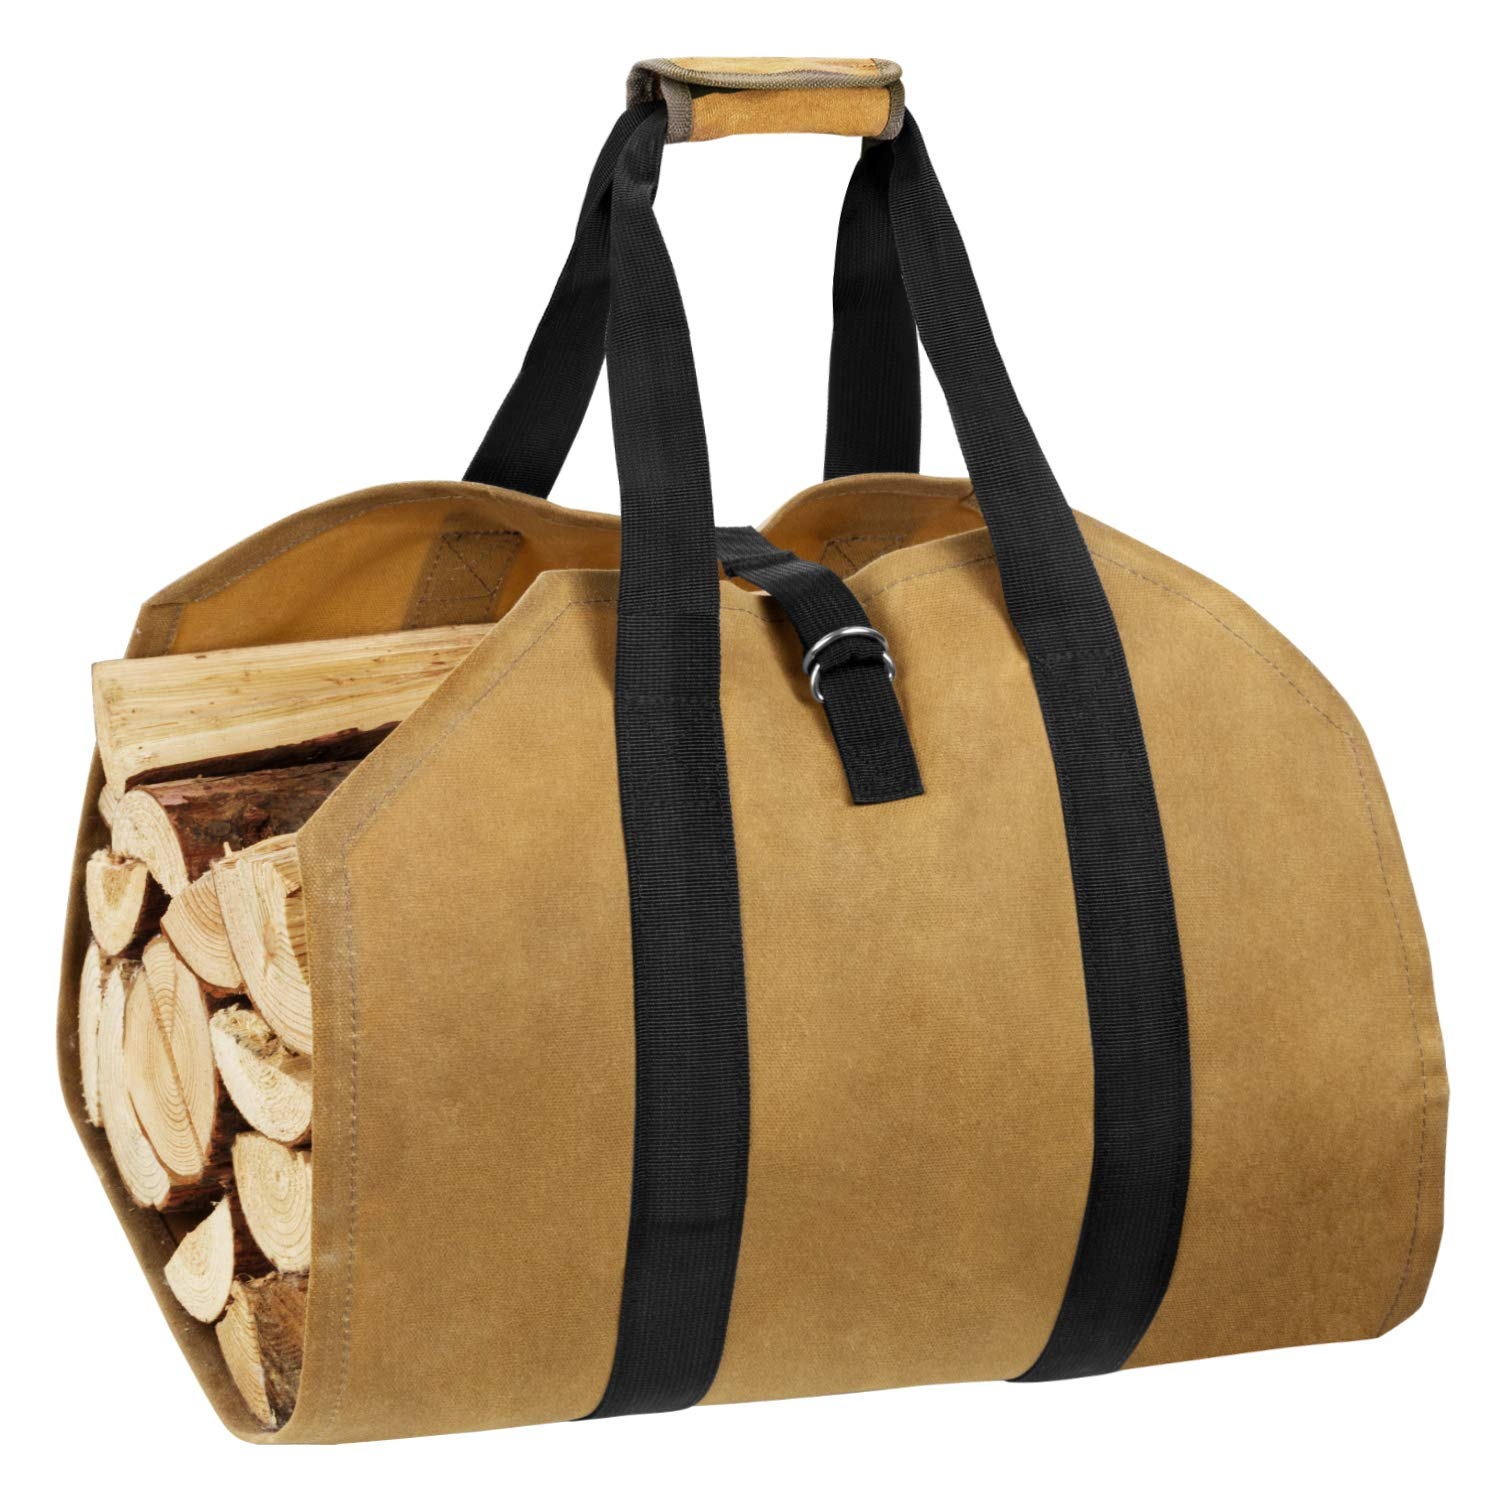 eletecpro Durable Waxed Canvas Firewood Log Carrier Heavy Duty Tote,Fire Place Sturdy Wood Carring Bag with Handles Security Strap for Camping Indoor by eletecpro